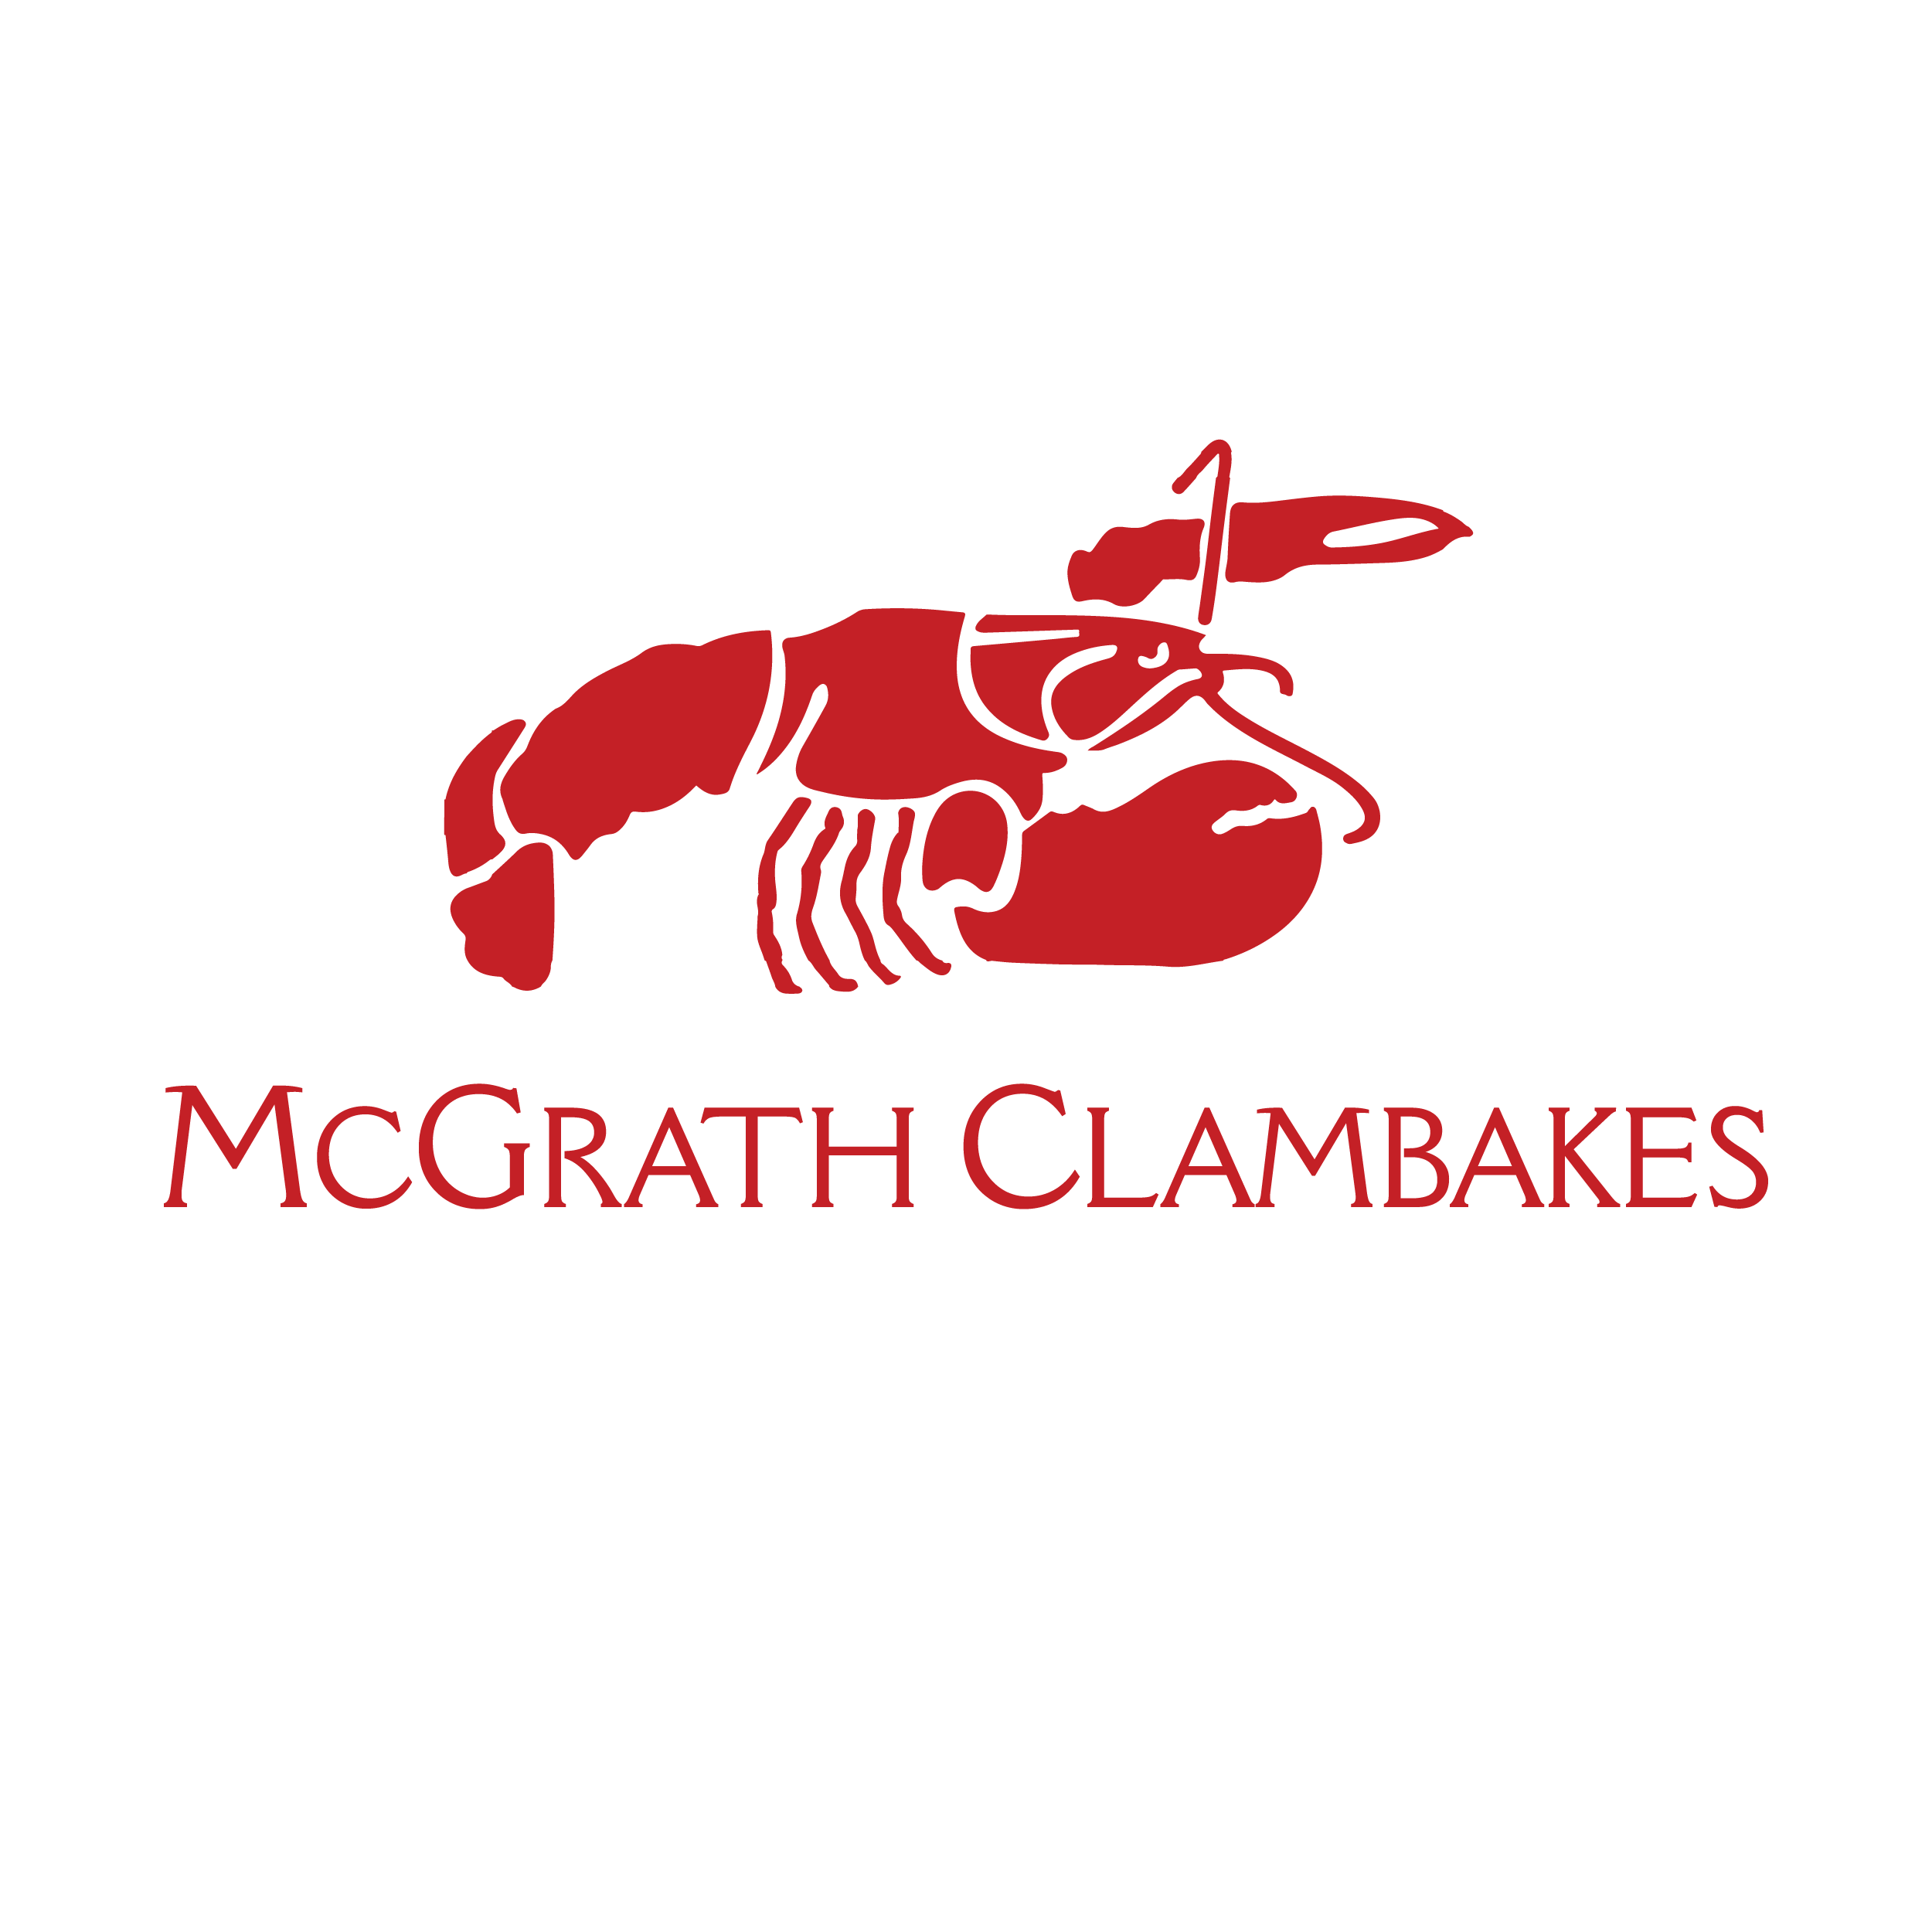 McGrath Clambakes